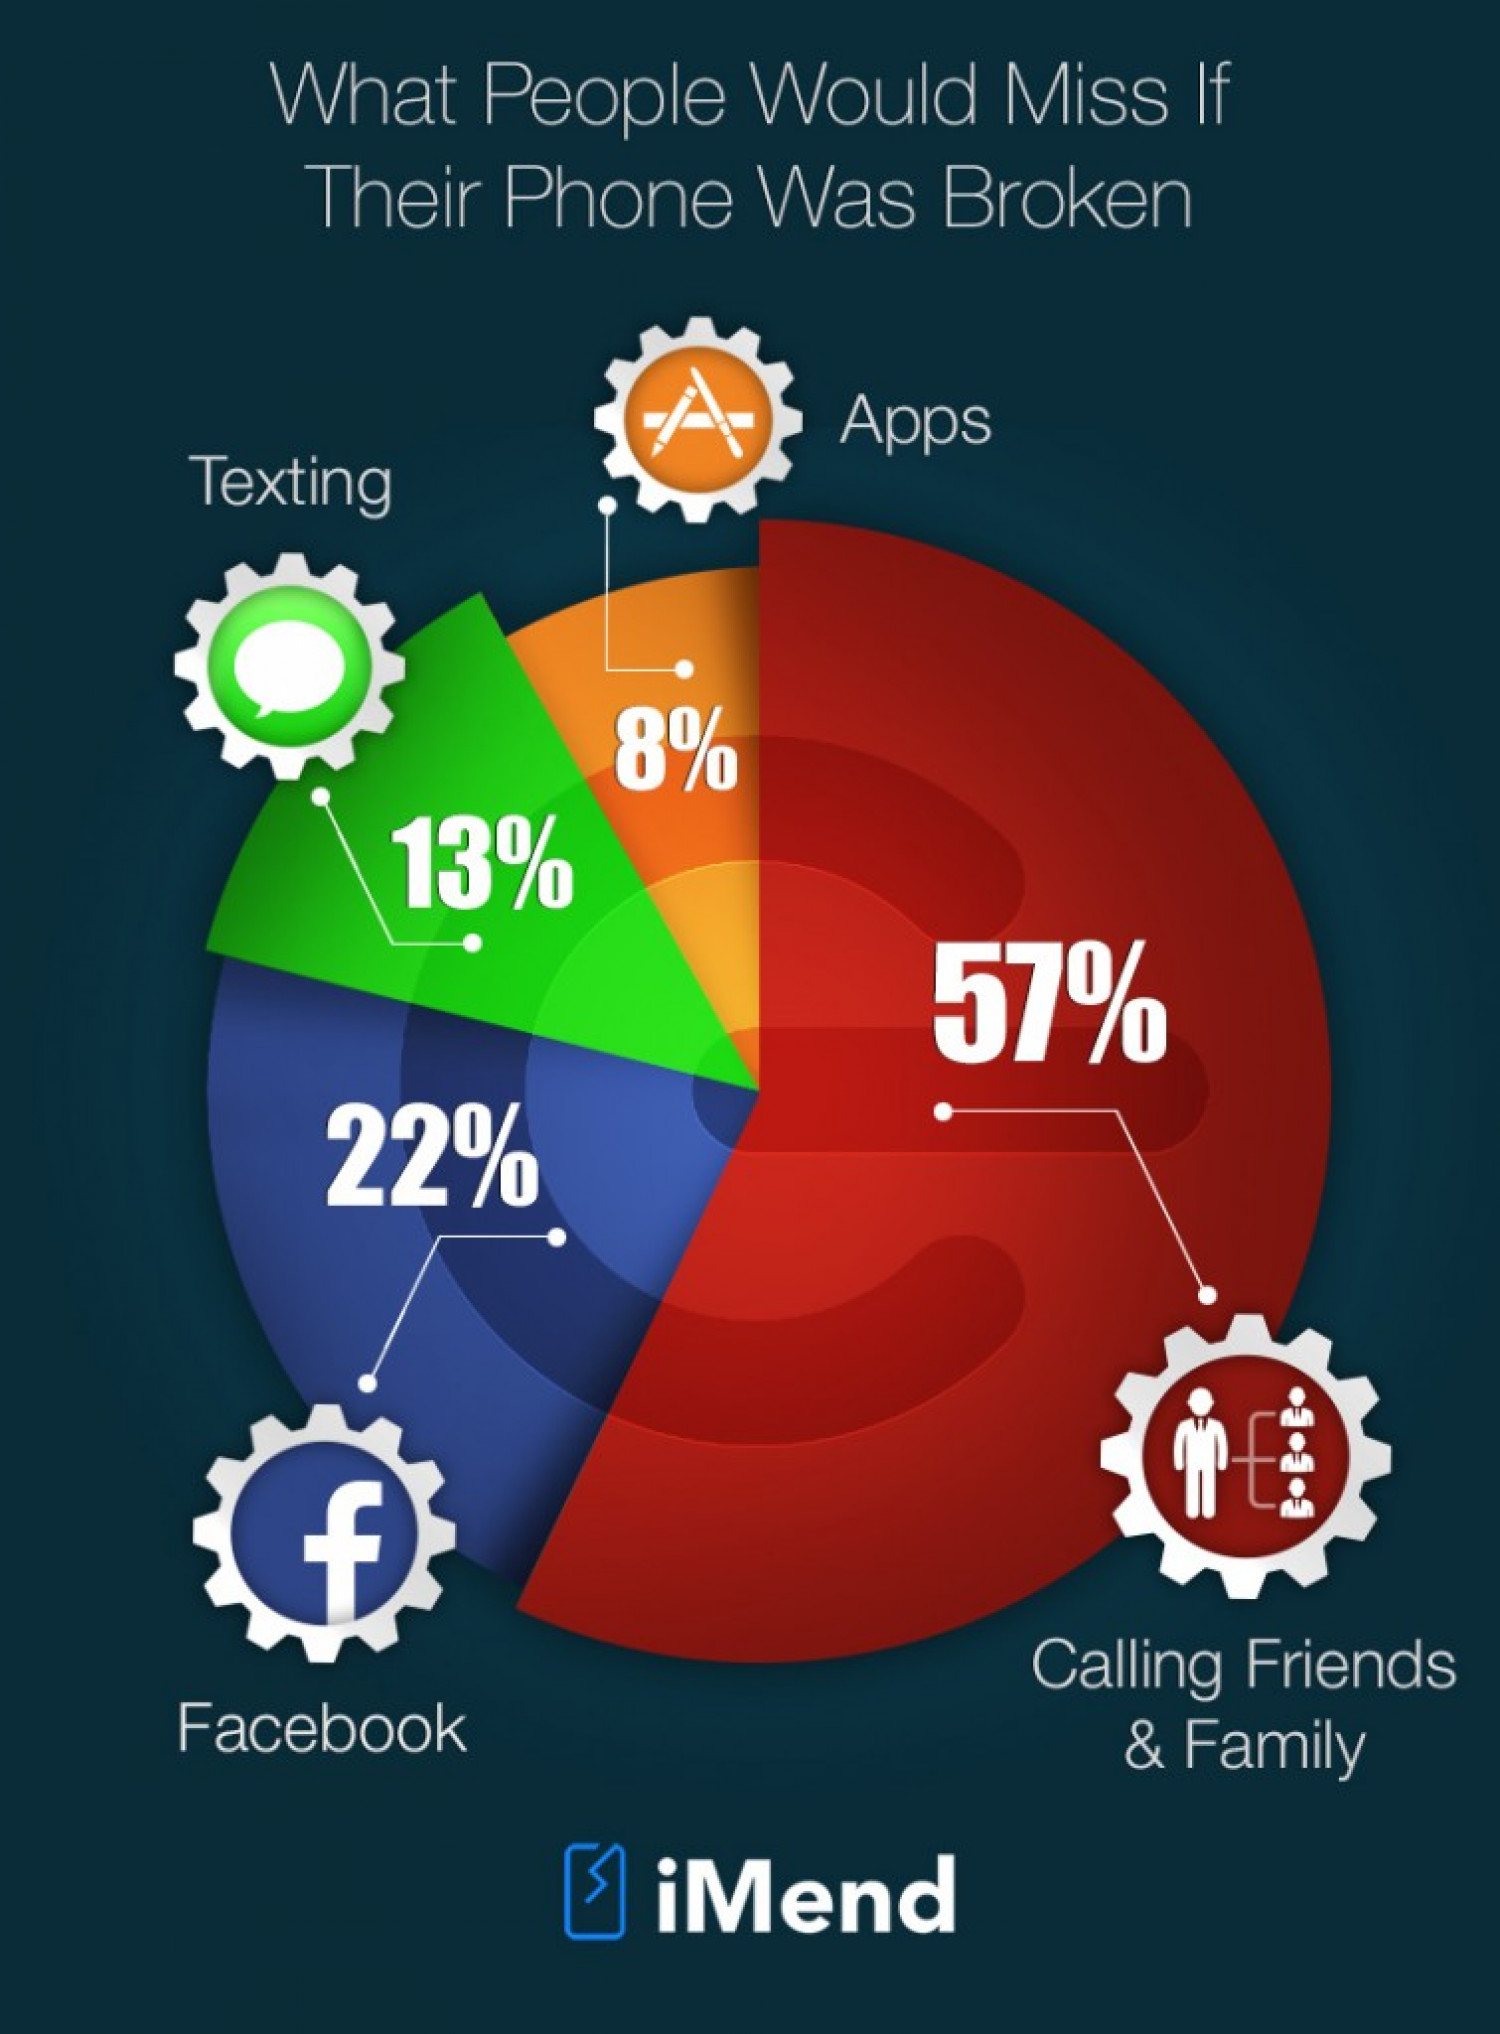 What People Would Miss Most if Their Phone Was Broken Infographic